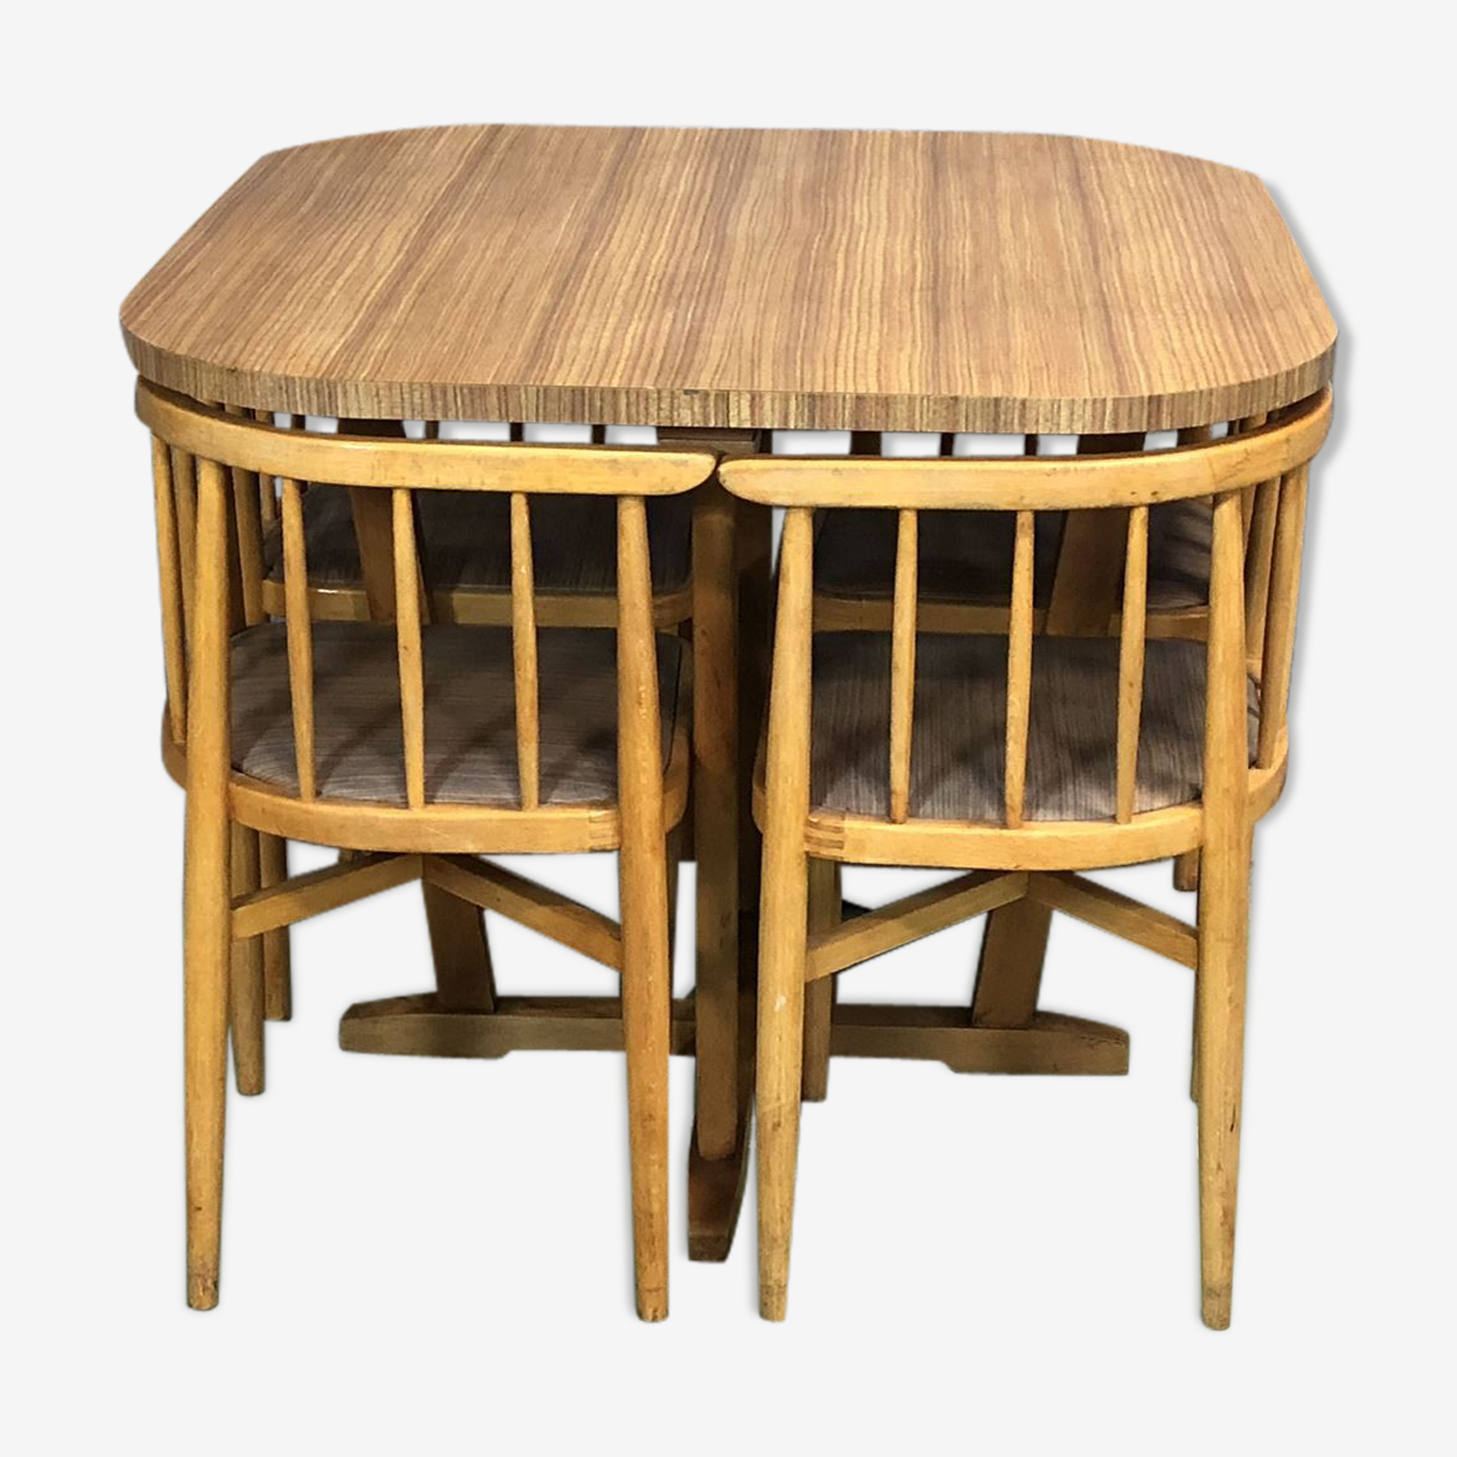 Table and 4 chairs of the 1970s in beech